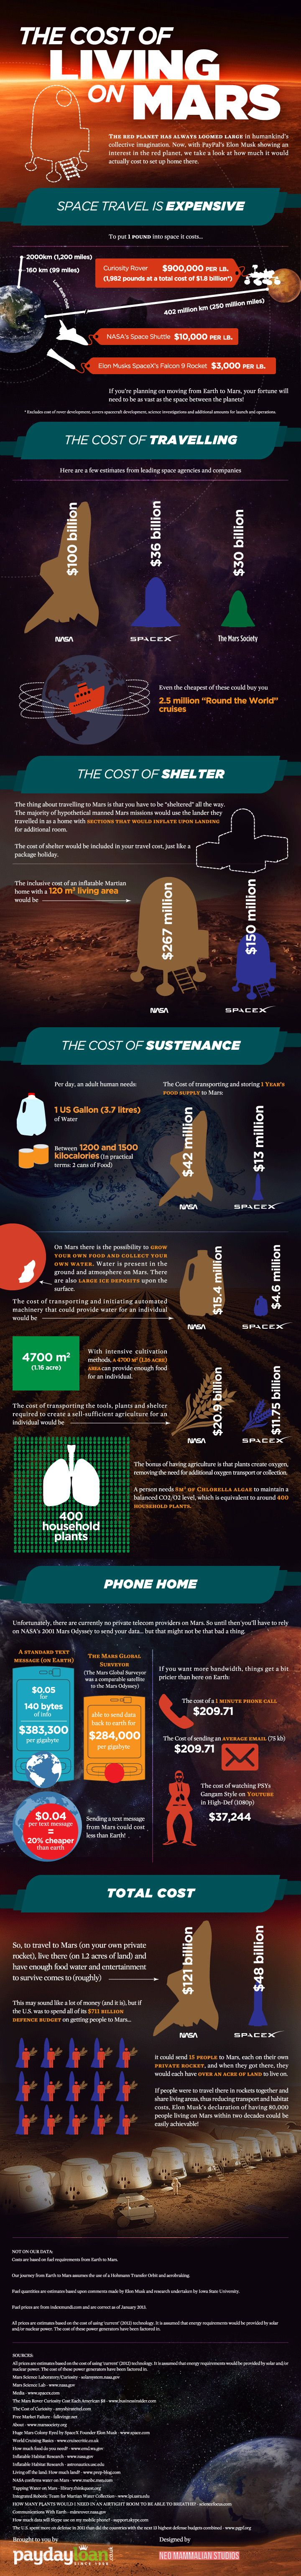 The cost of living on Mars #infographic